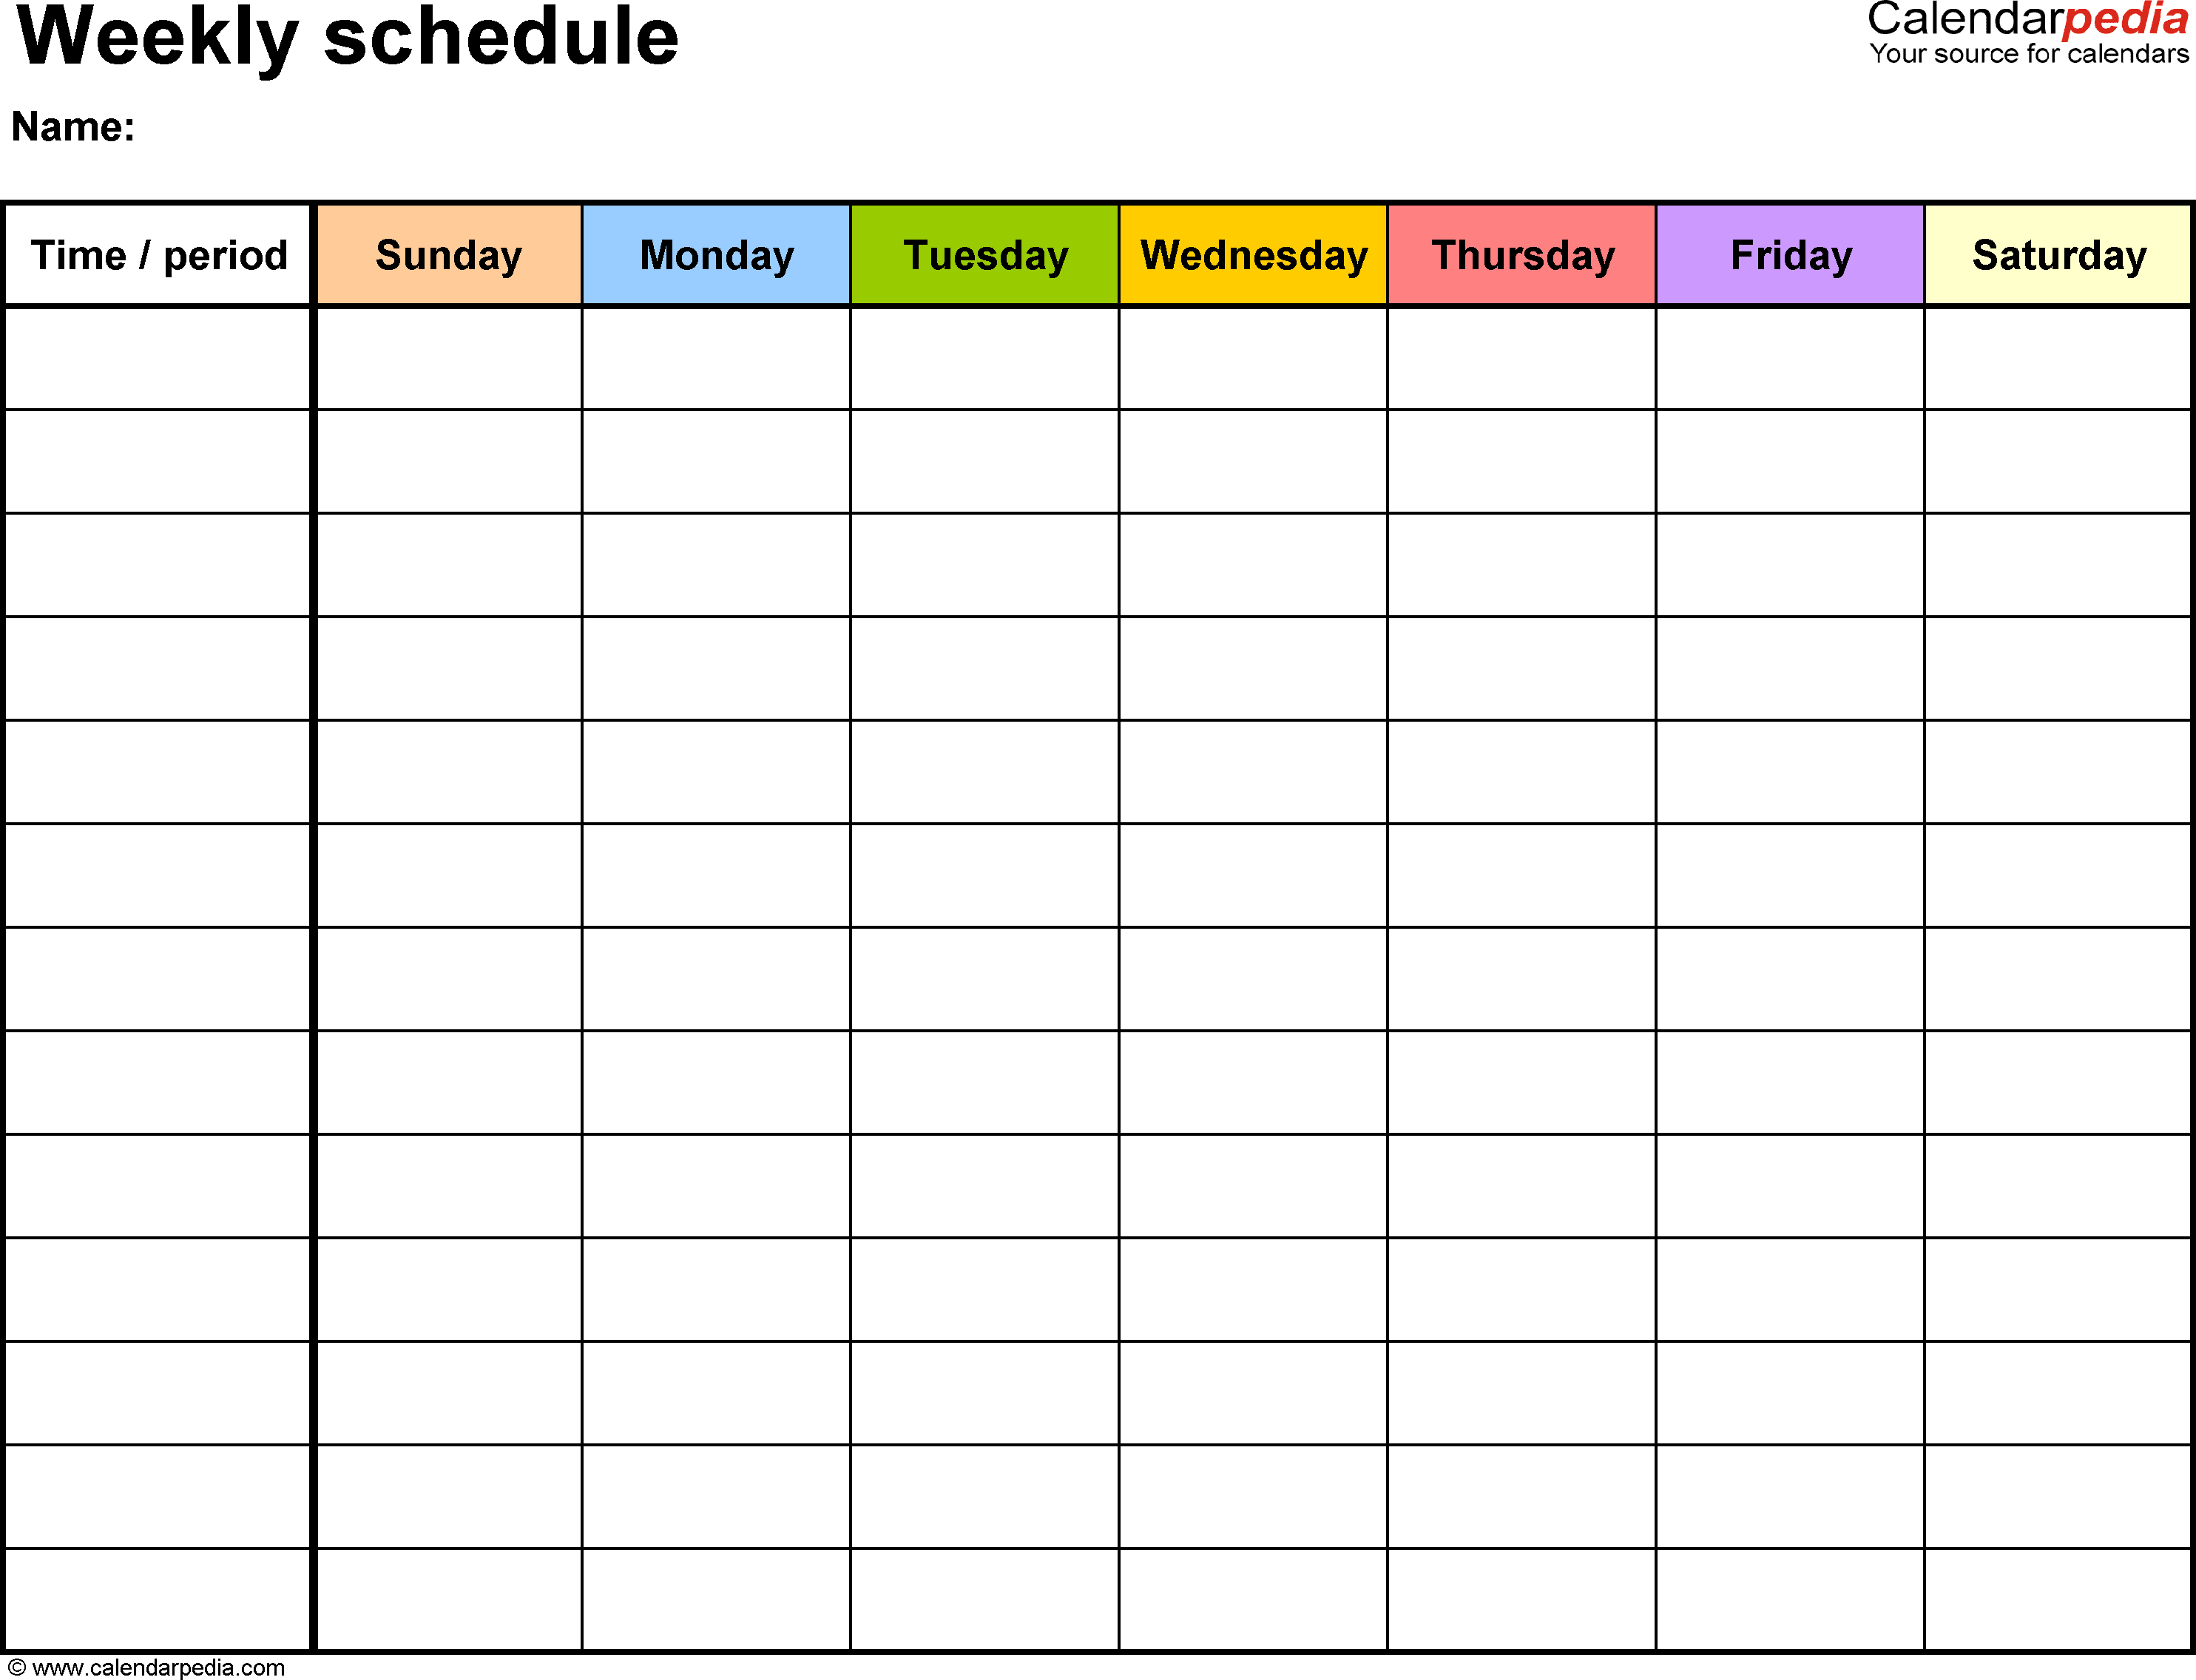 Free Weekly Schedule Templates For Pdf   18 Templates With Time Management Sheets Template